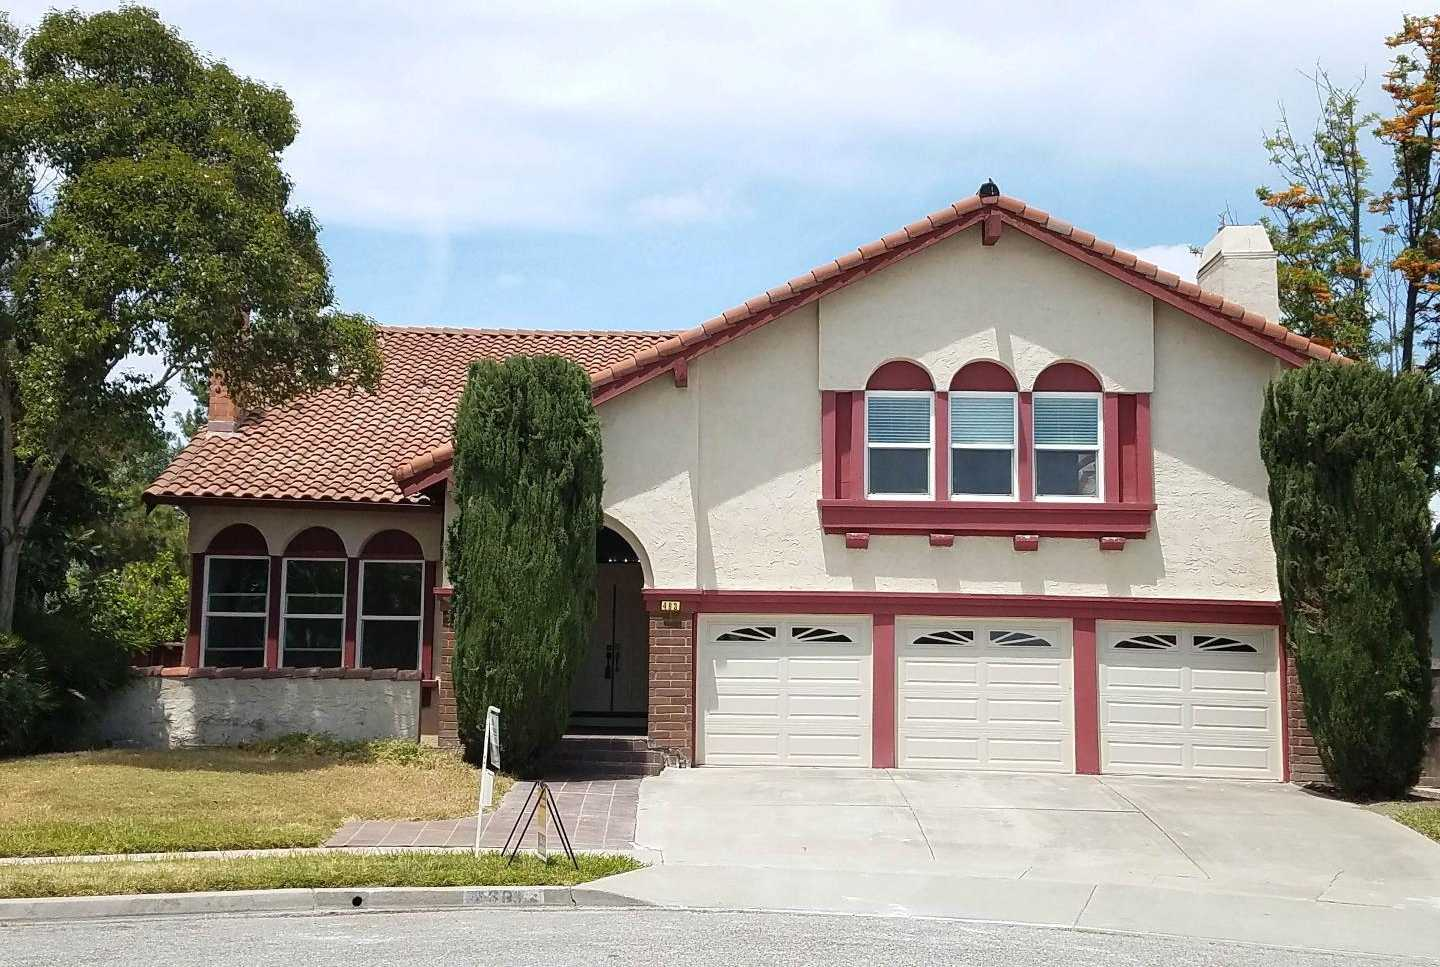 $1,770,000 - 4Br/3Ba -  for Sale in Milpitas